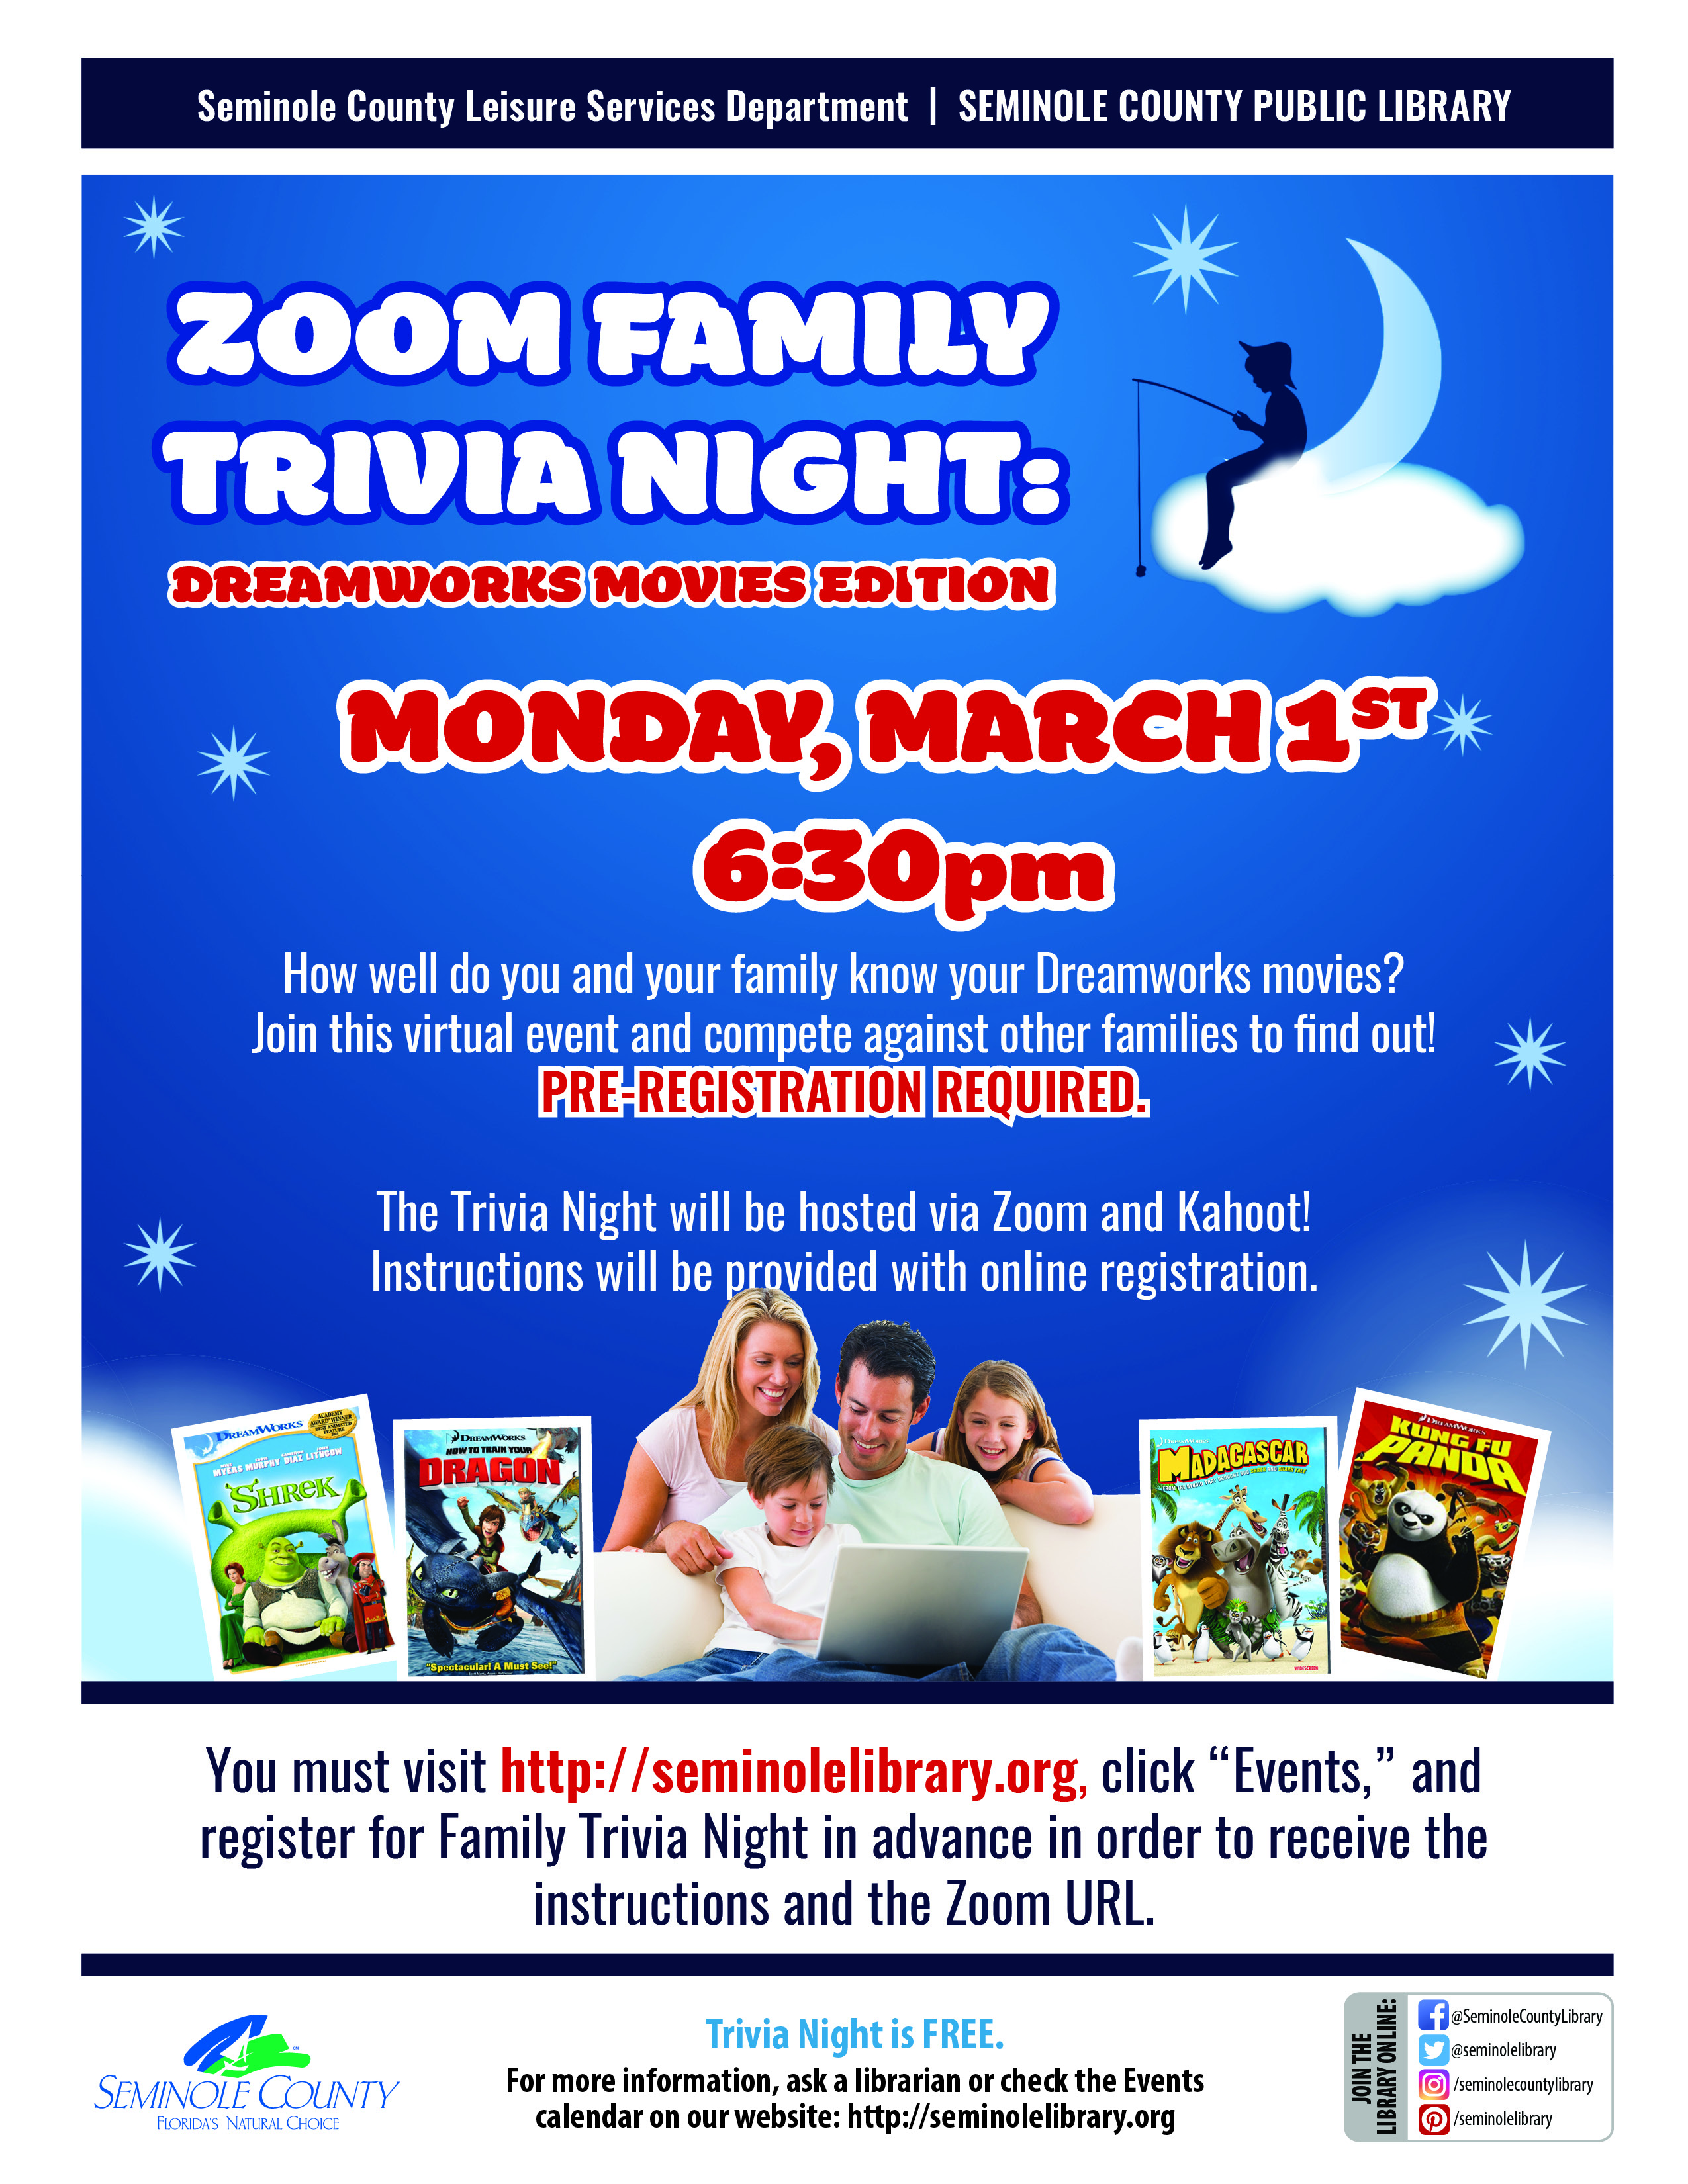 Family Trivia Night - Dreamworks Movies Edition